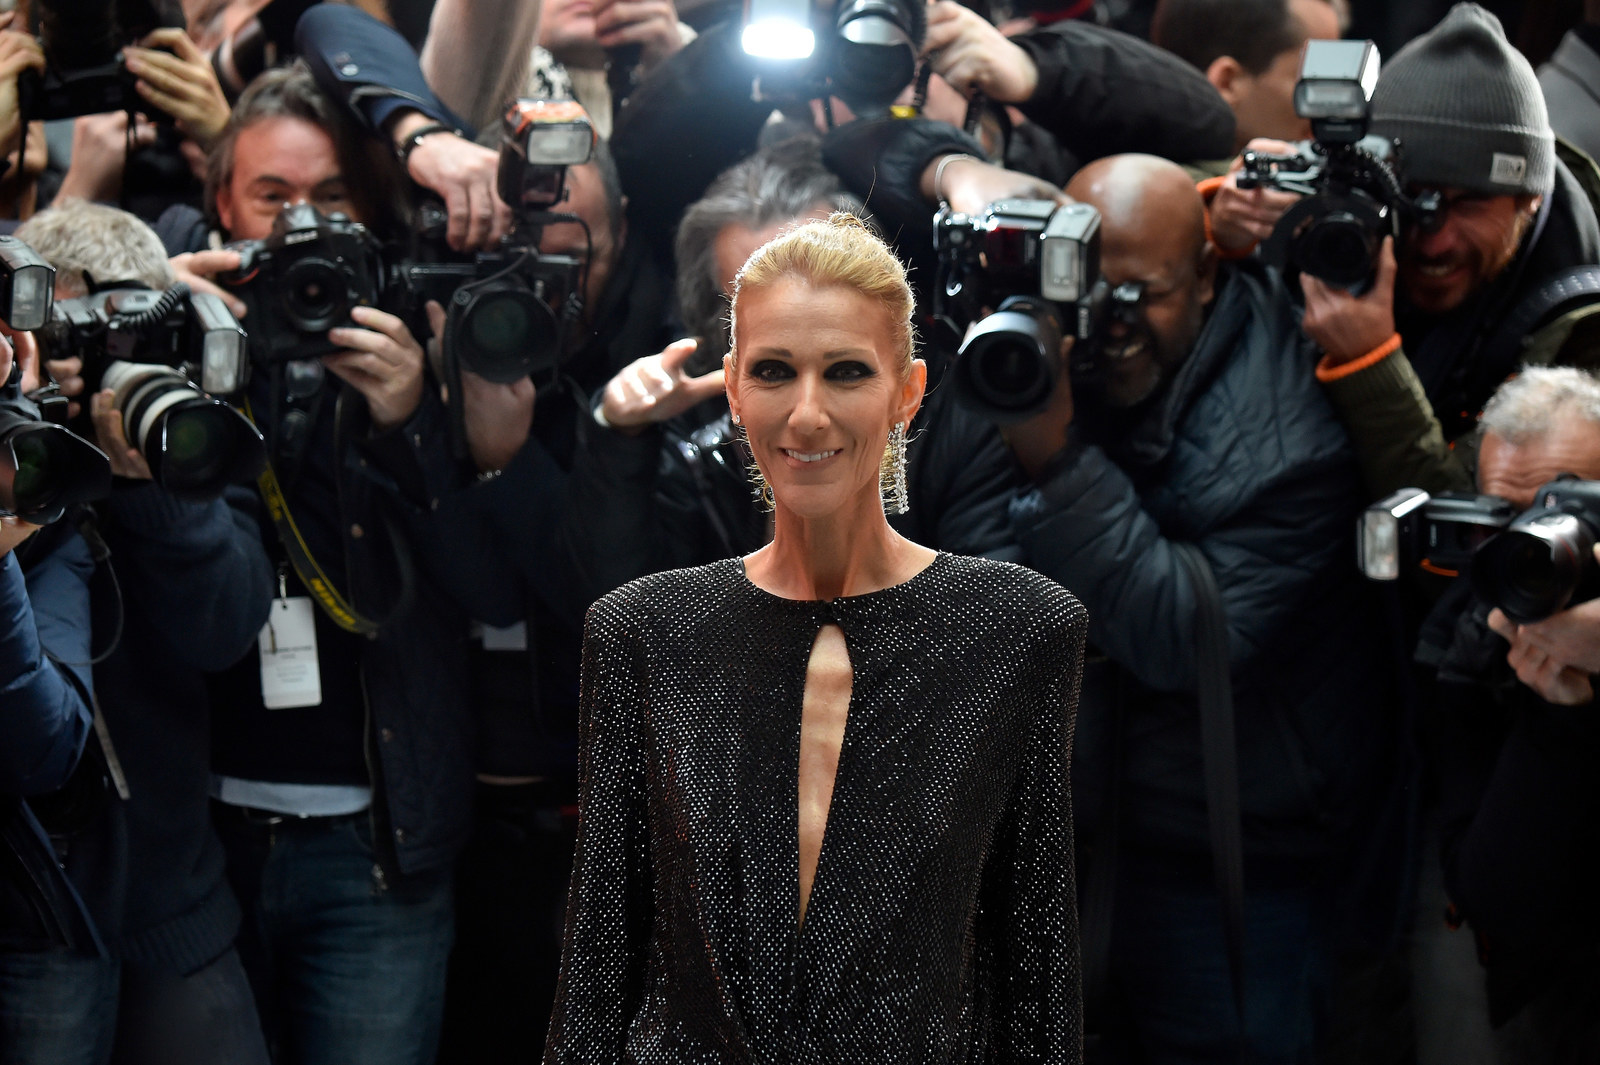 On March 30, Celine Dion will turn 51.